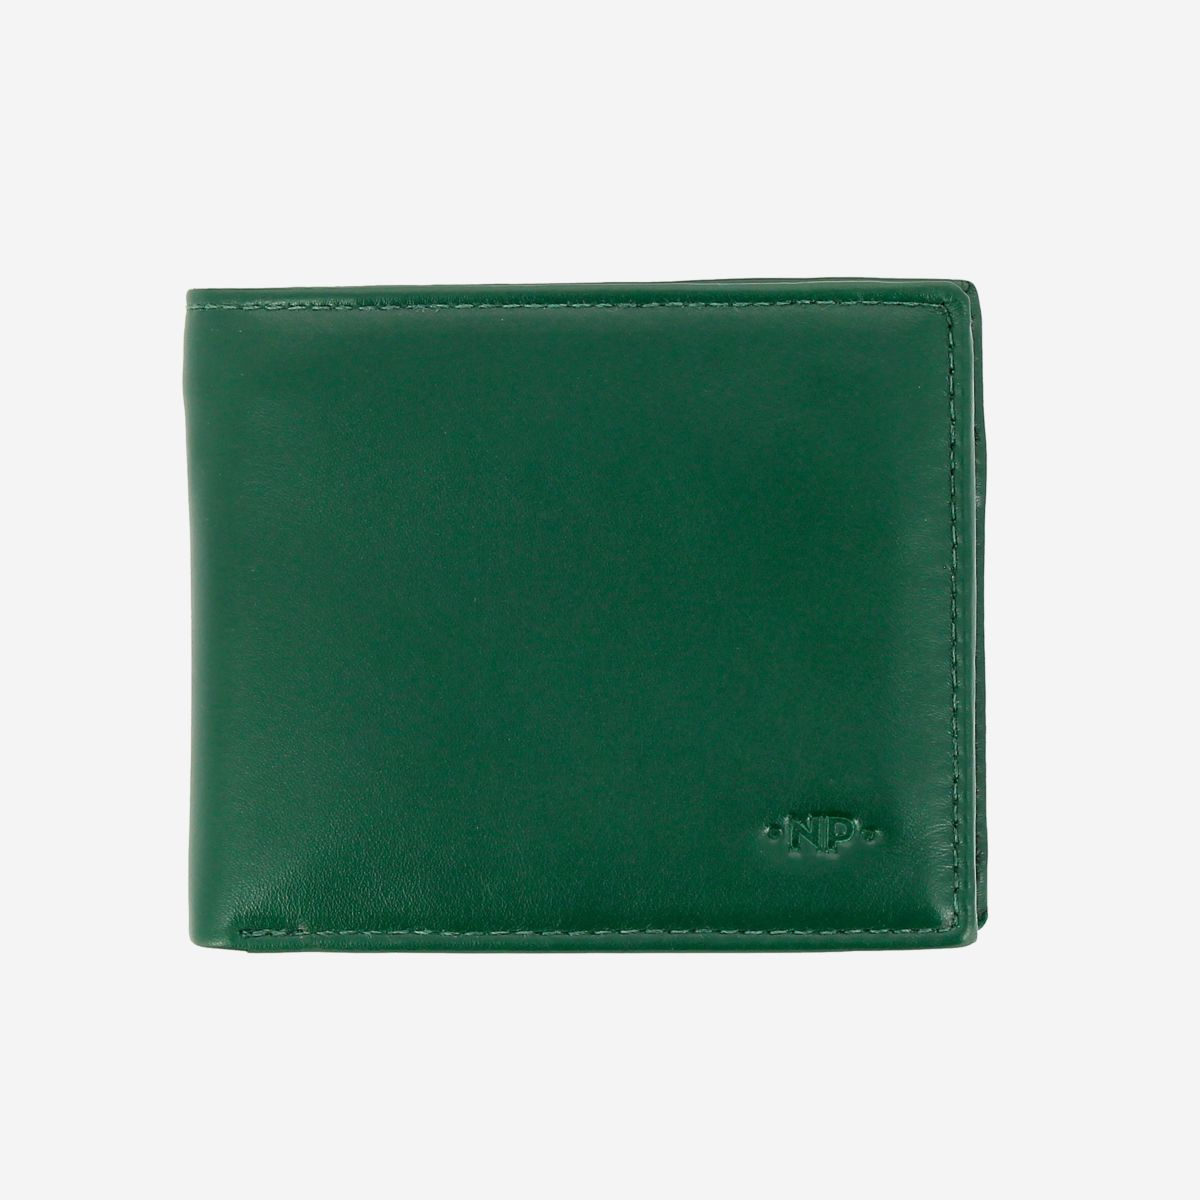 NUVOLA PELLE Small Wallet For Men With Coin Purse - Green